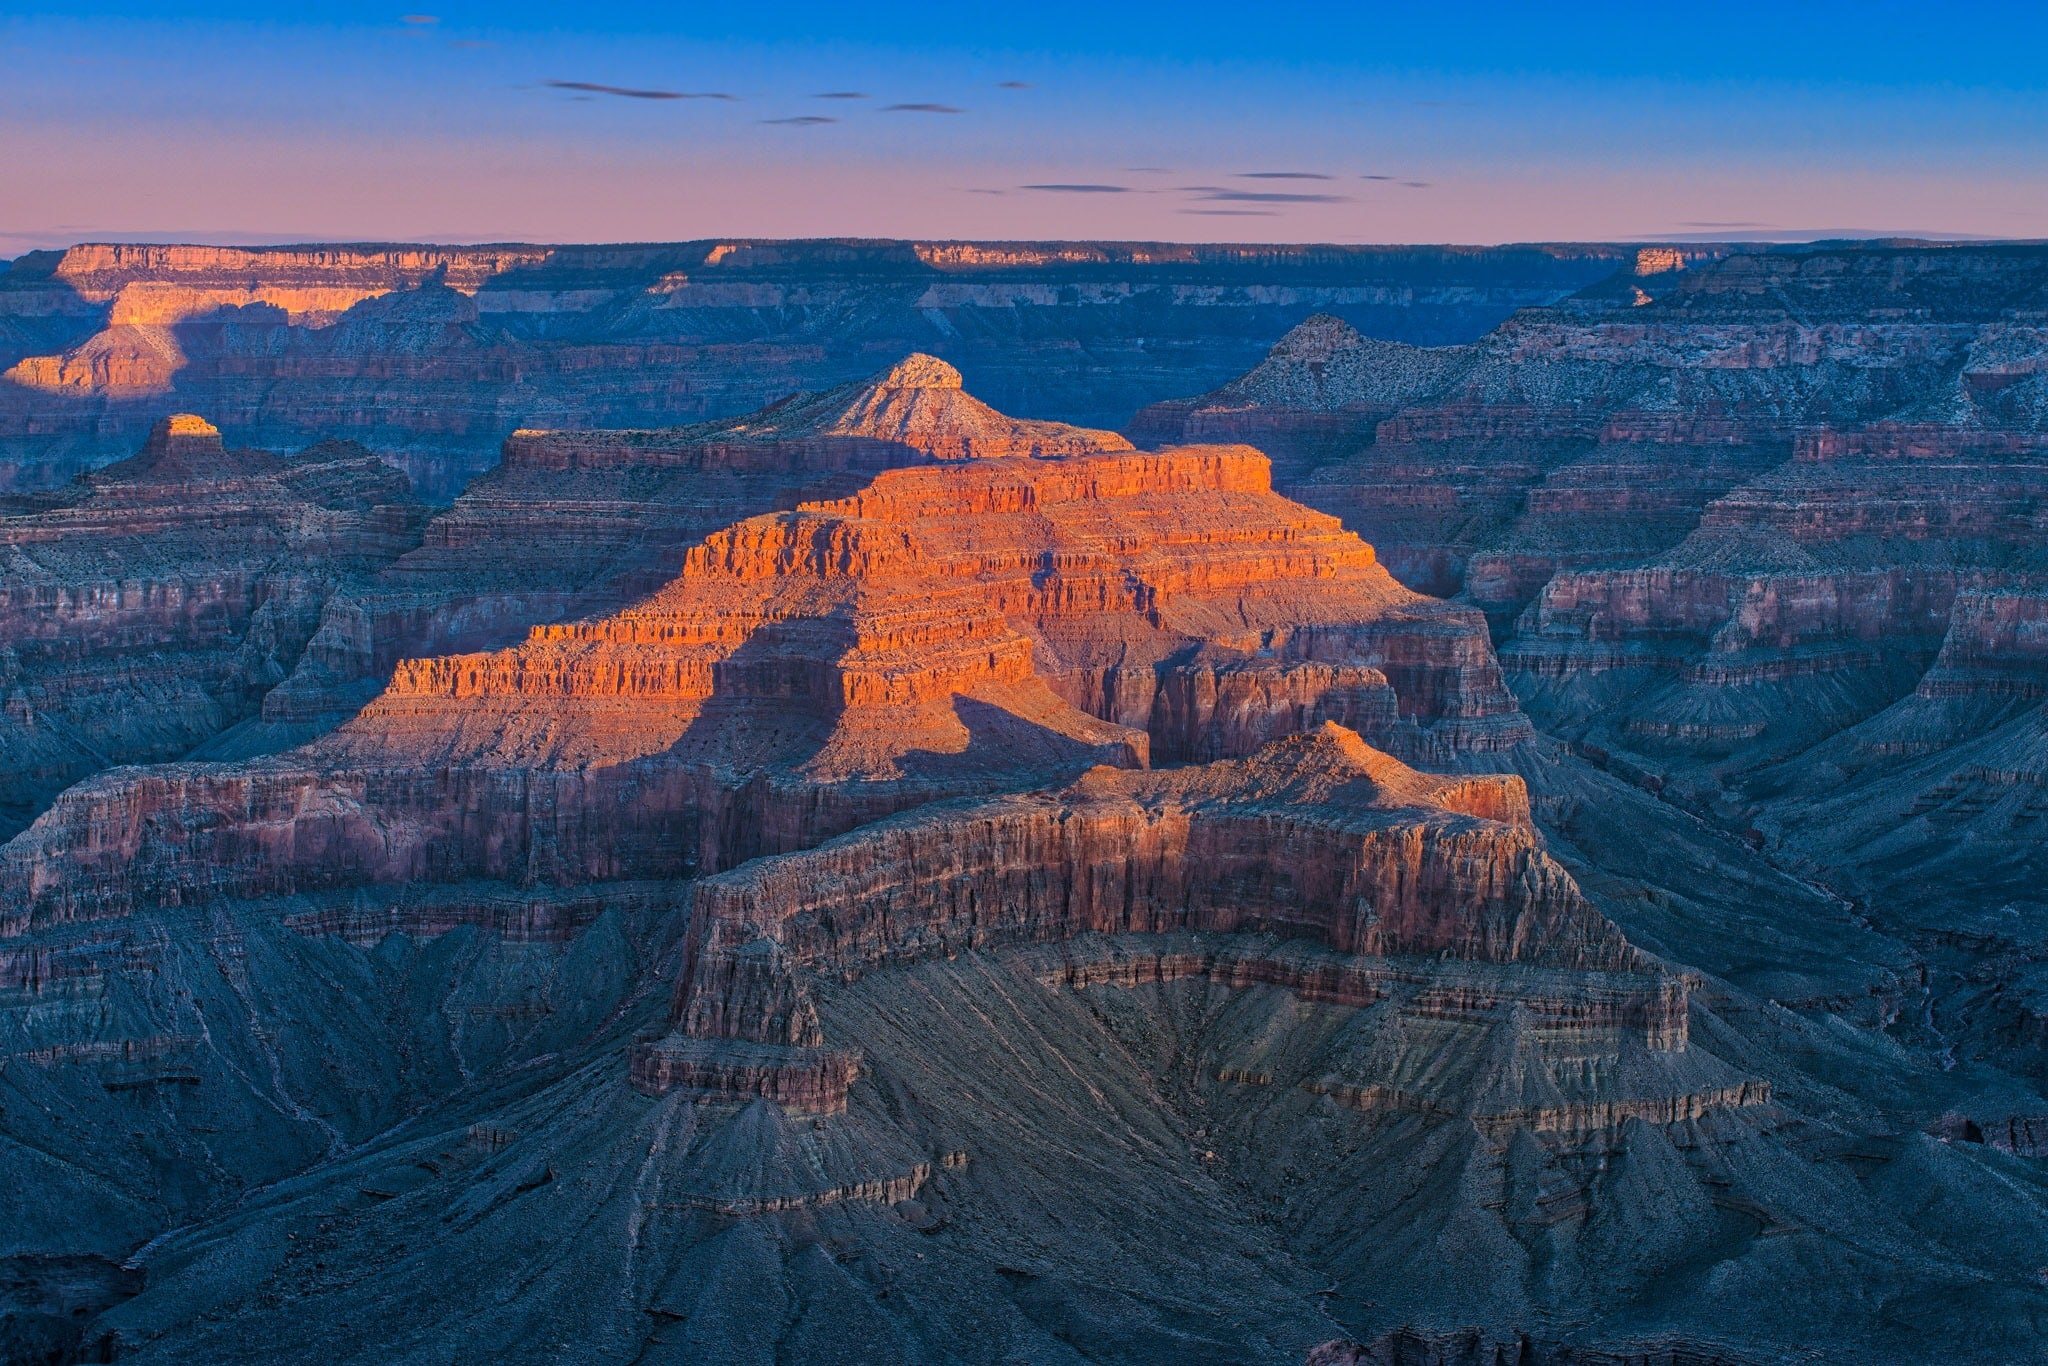 Sunrise at Hopi Point on the South Rim of the Grand Canyon in Arizona.